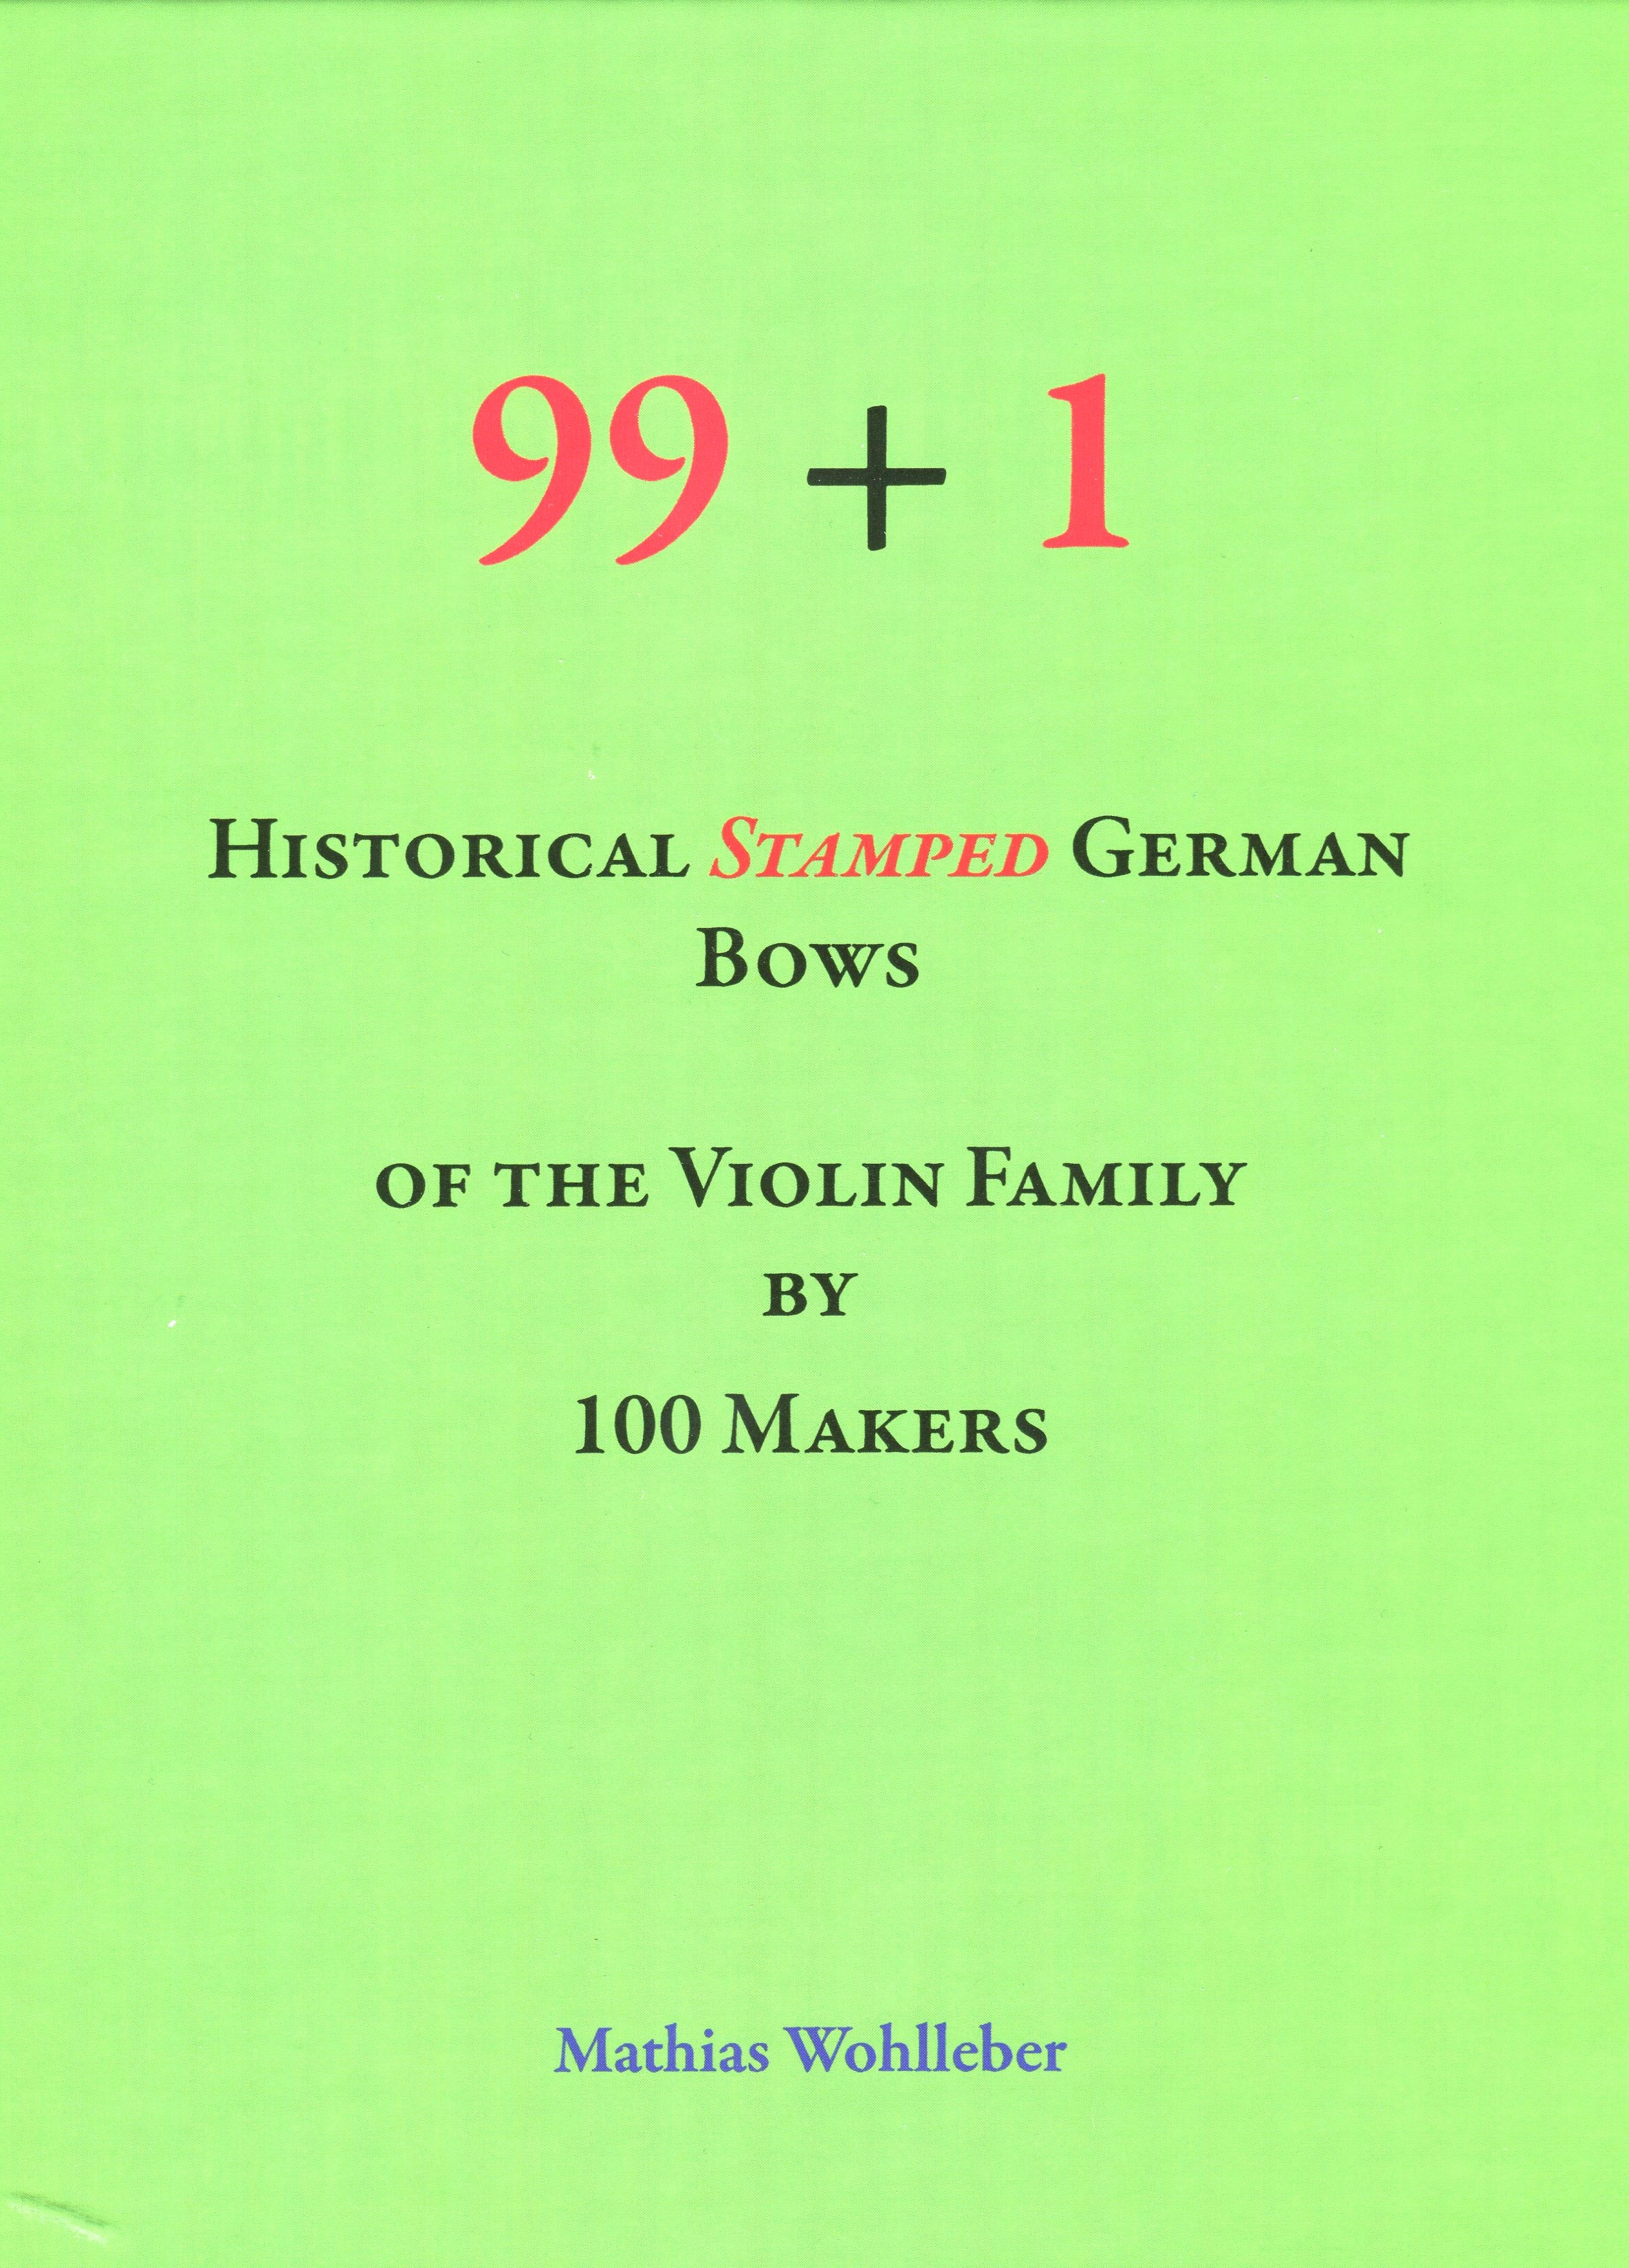 Darling Publications + Mathias Wohlleber: 99+1 Historical stamped German Bows